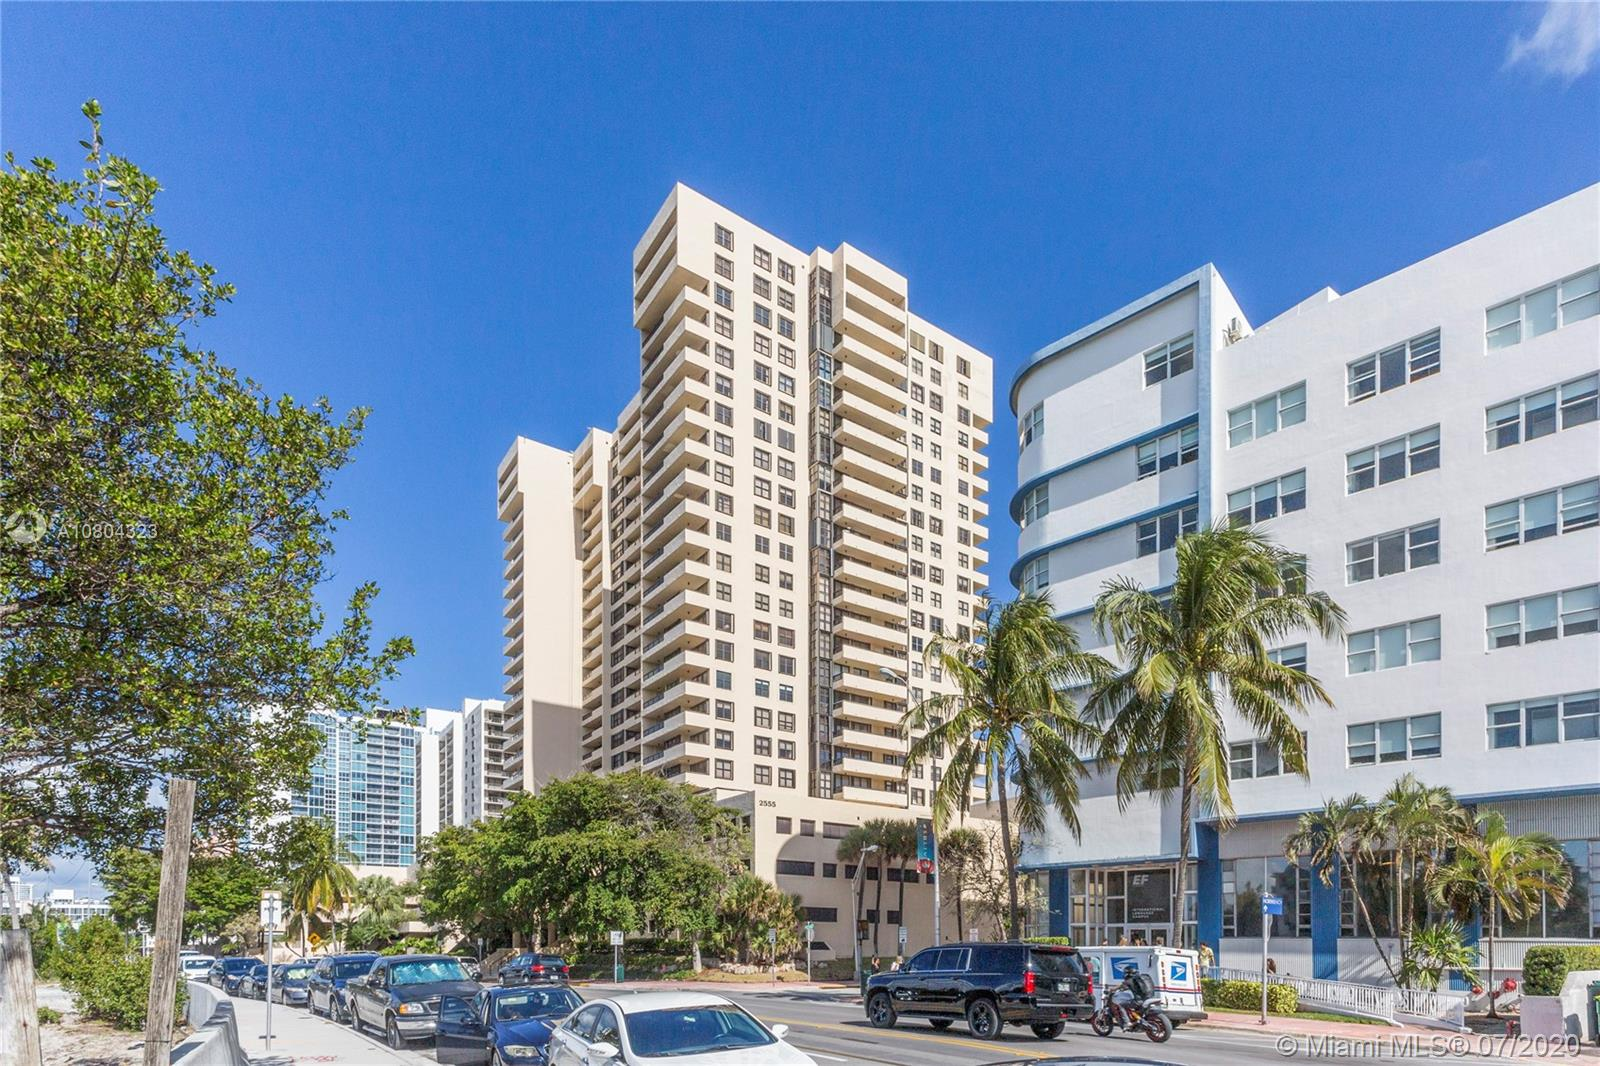 Just across Indian Creek and into the white sands of Miami Beach, you will find this jewel of an apartment. Spacious 2 bedroom/2 bathroom unit totally renovated and fashionably furnished. The kitchen is completely open, facing the living/dining area and the breathtaking views of Biscayne bay, the Miami skyline, and the beach through its high-impact sliding doors and windows. And also from its spacious wraparound balcony. Both bedrooms also provide the same enchanting views. Club Atlantis has the best location, within walking distance to virtually everything and everywhere. It is a full-service condo with concierge, valet parking and 24-hour security. The amenities include a party room, a social room, a gym, sauna, and pool area with party-ready gazebos. This is the place to be!